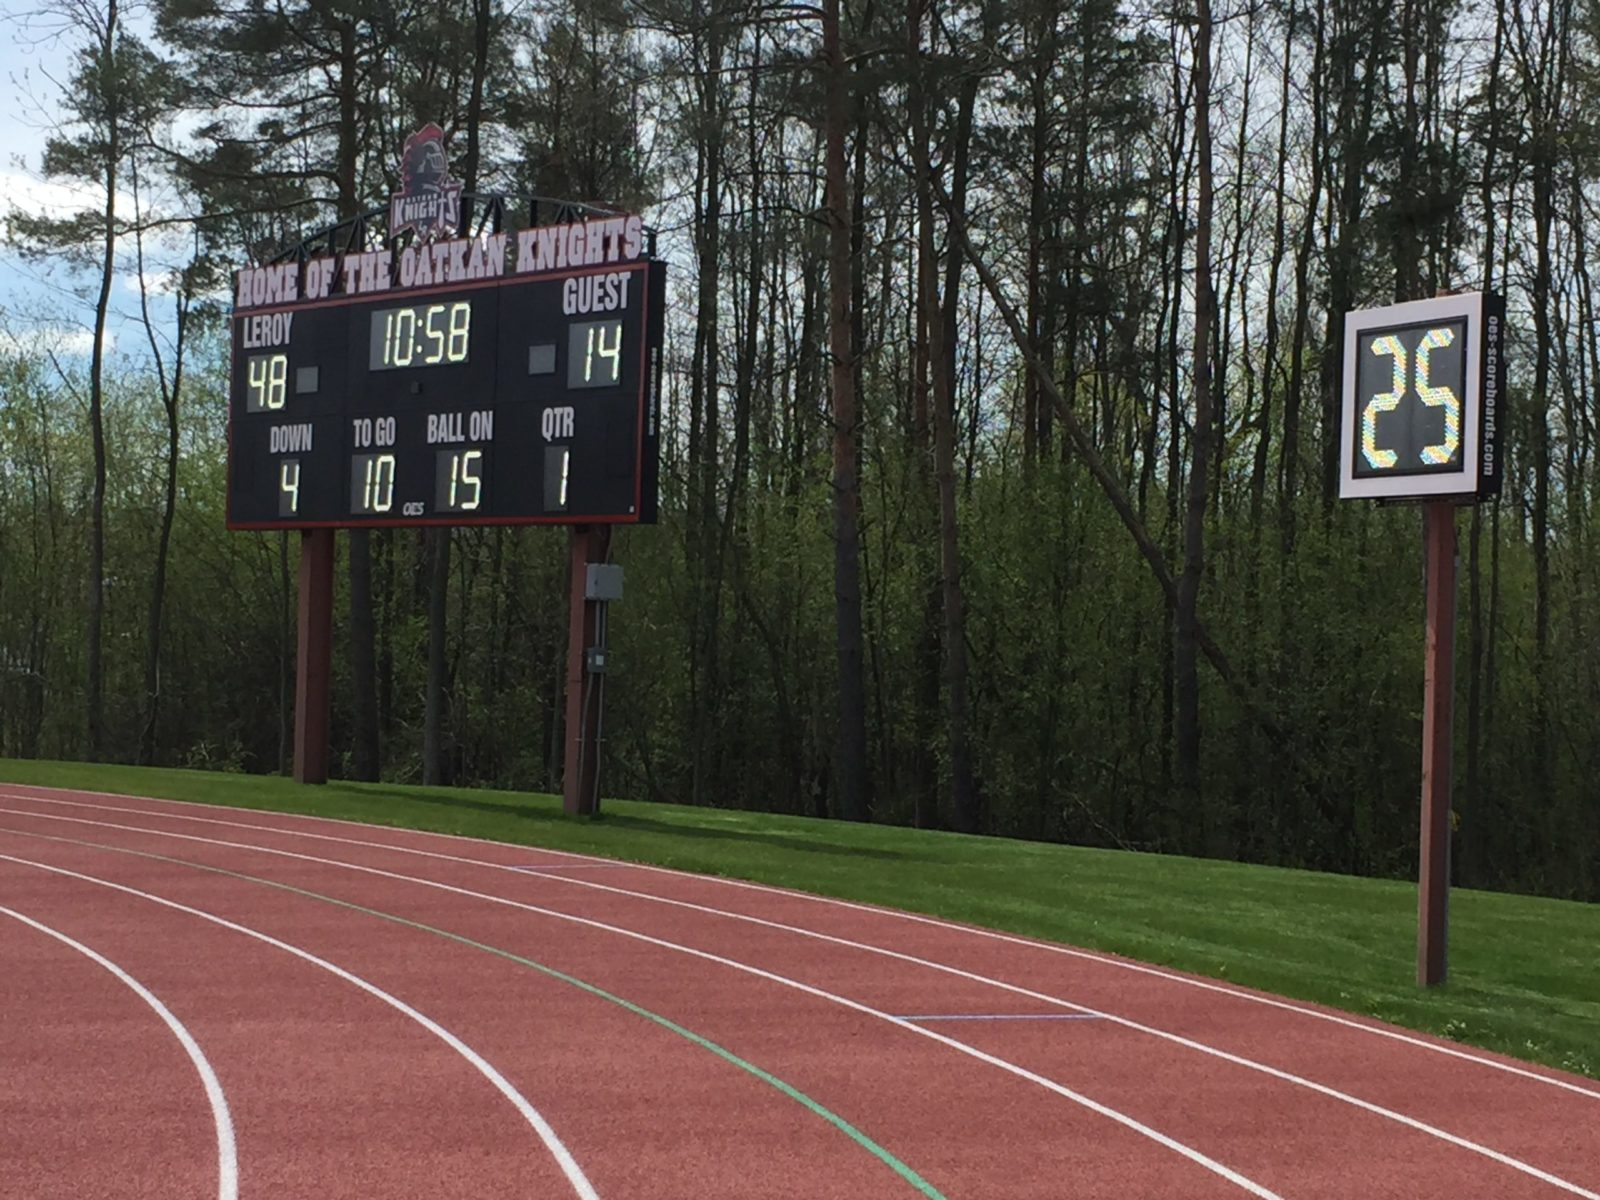 Track with scoreboard in background.